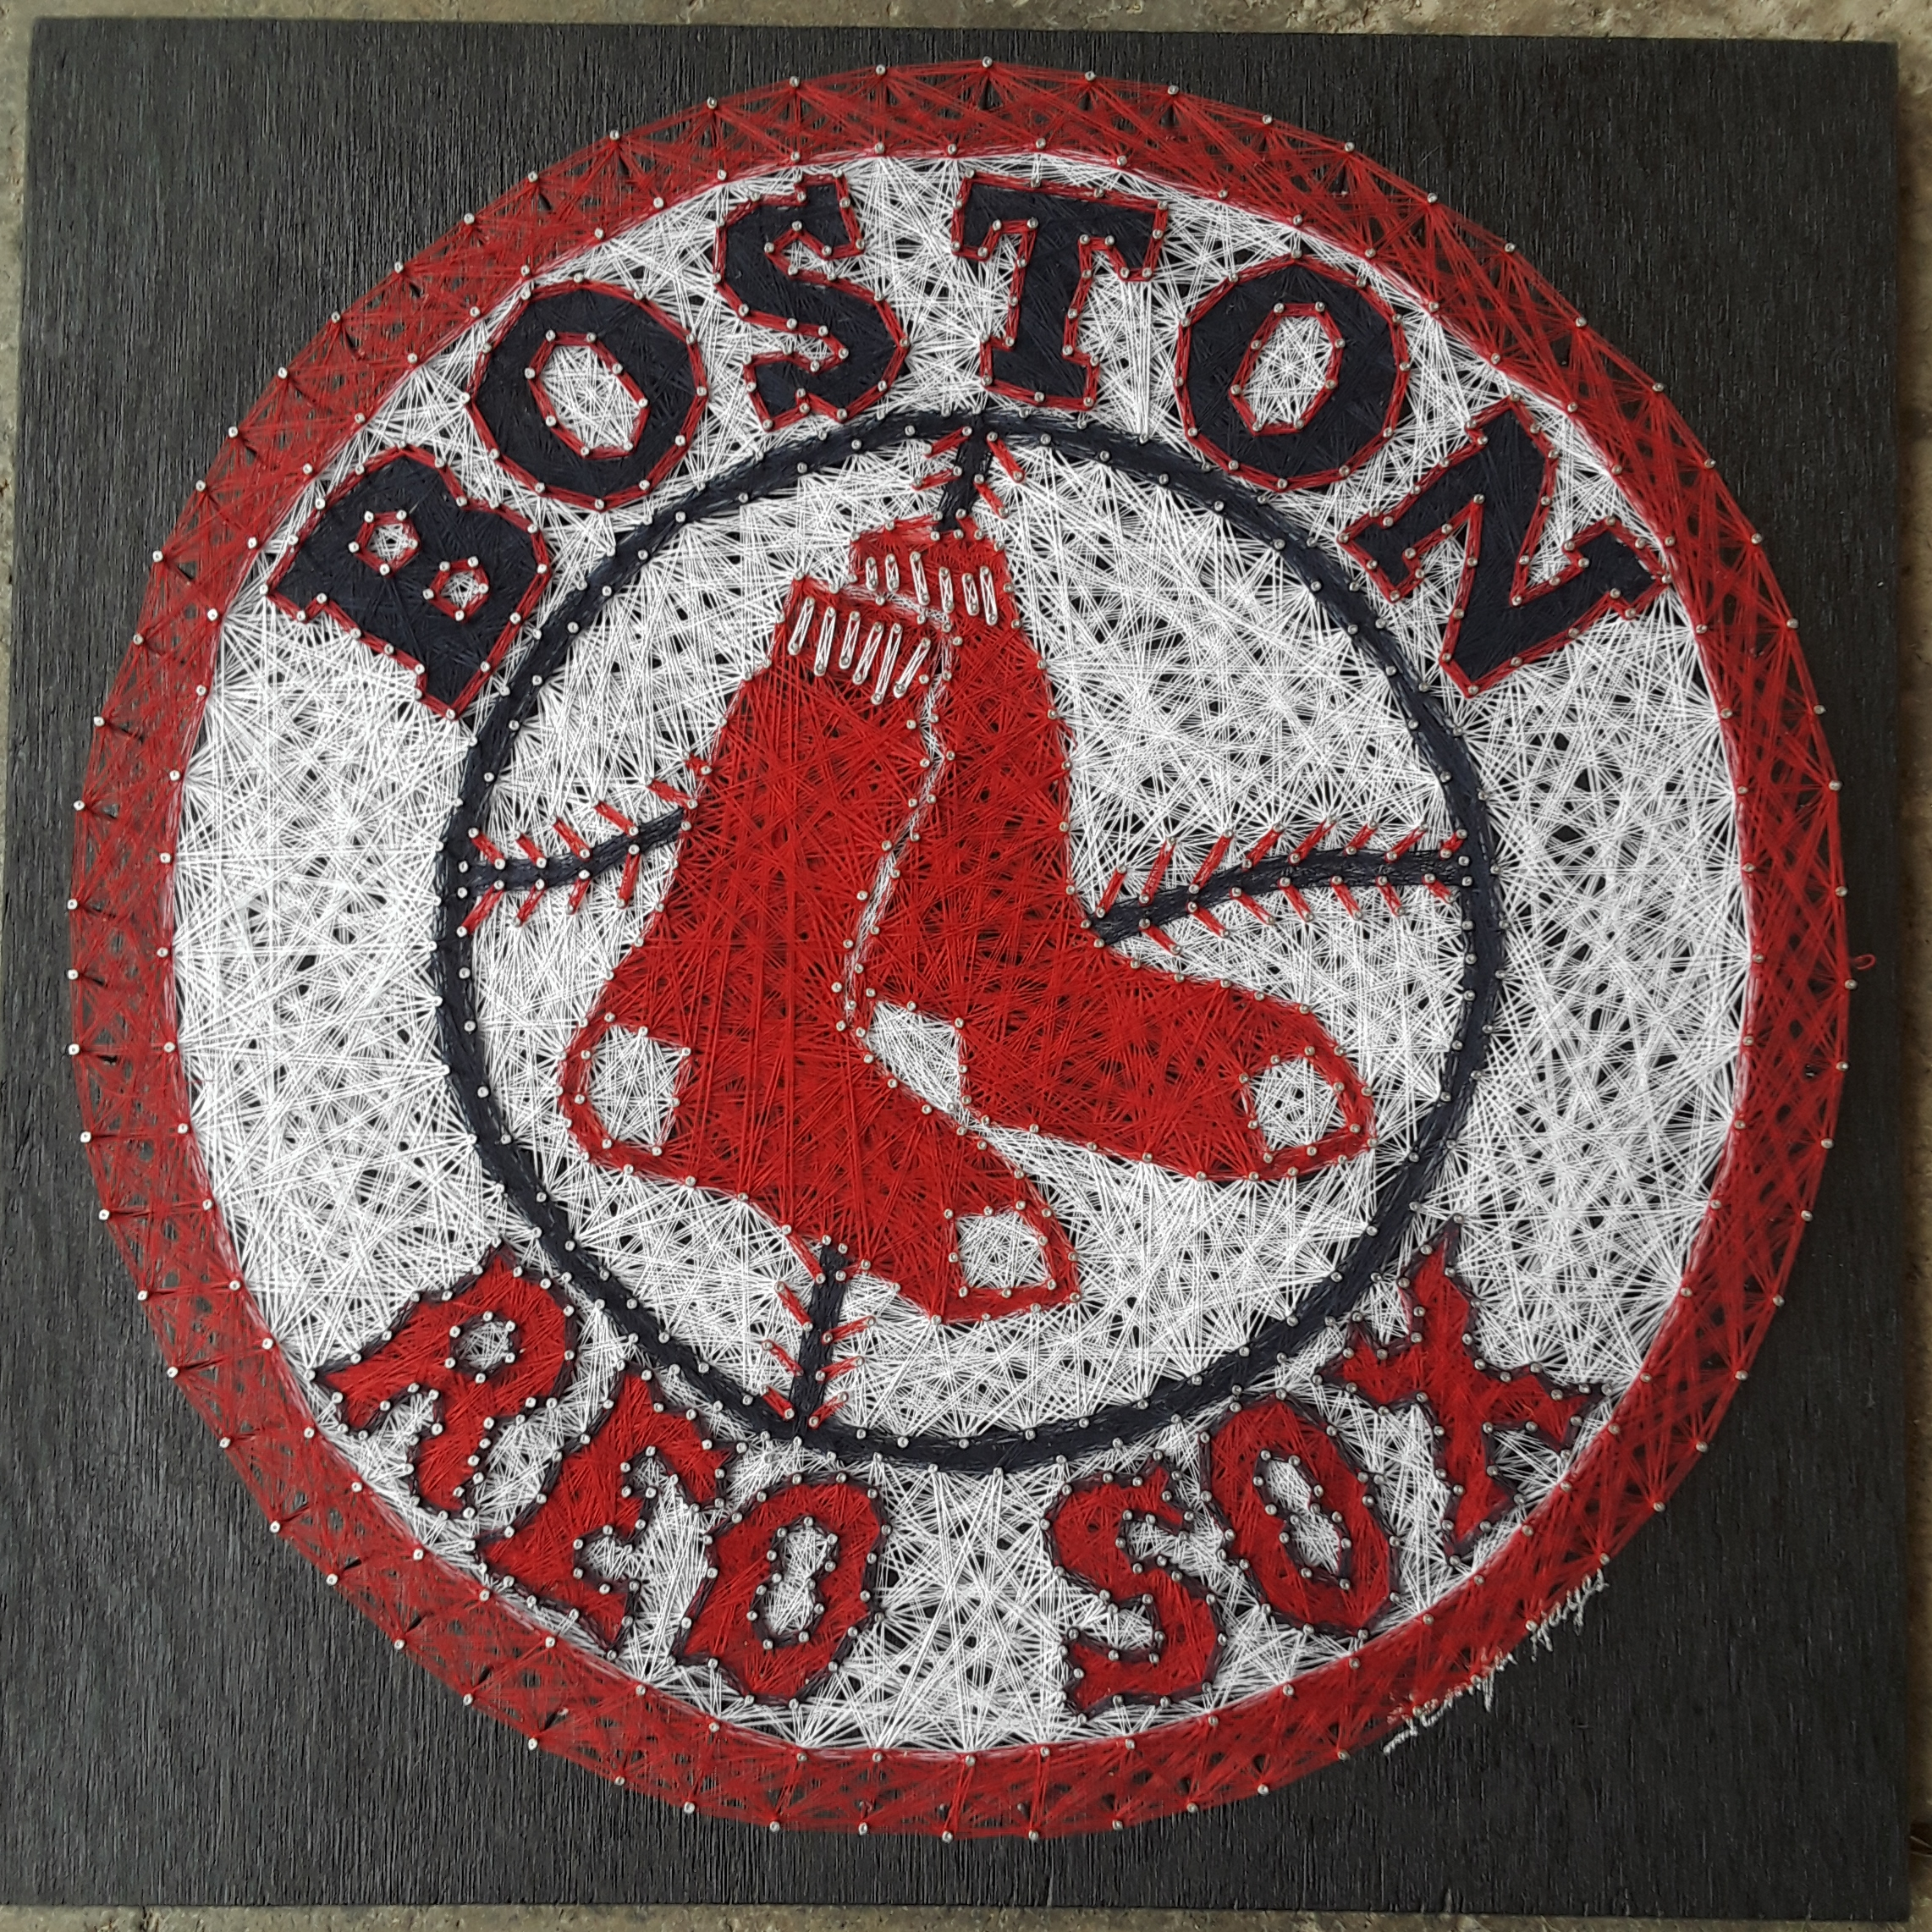 20x20 Red Sox